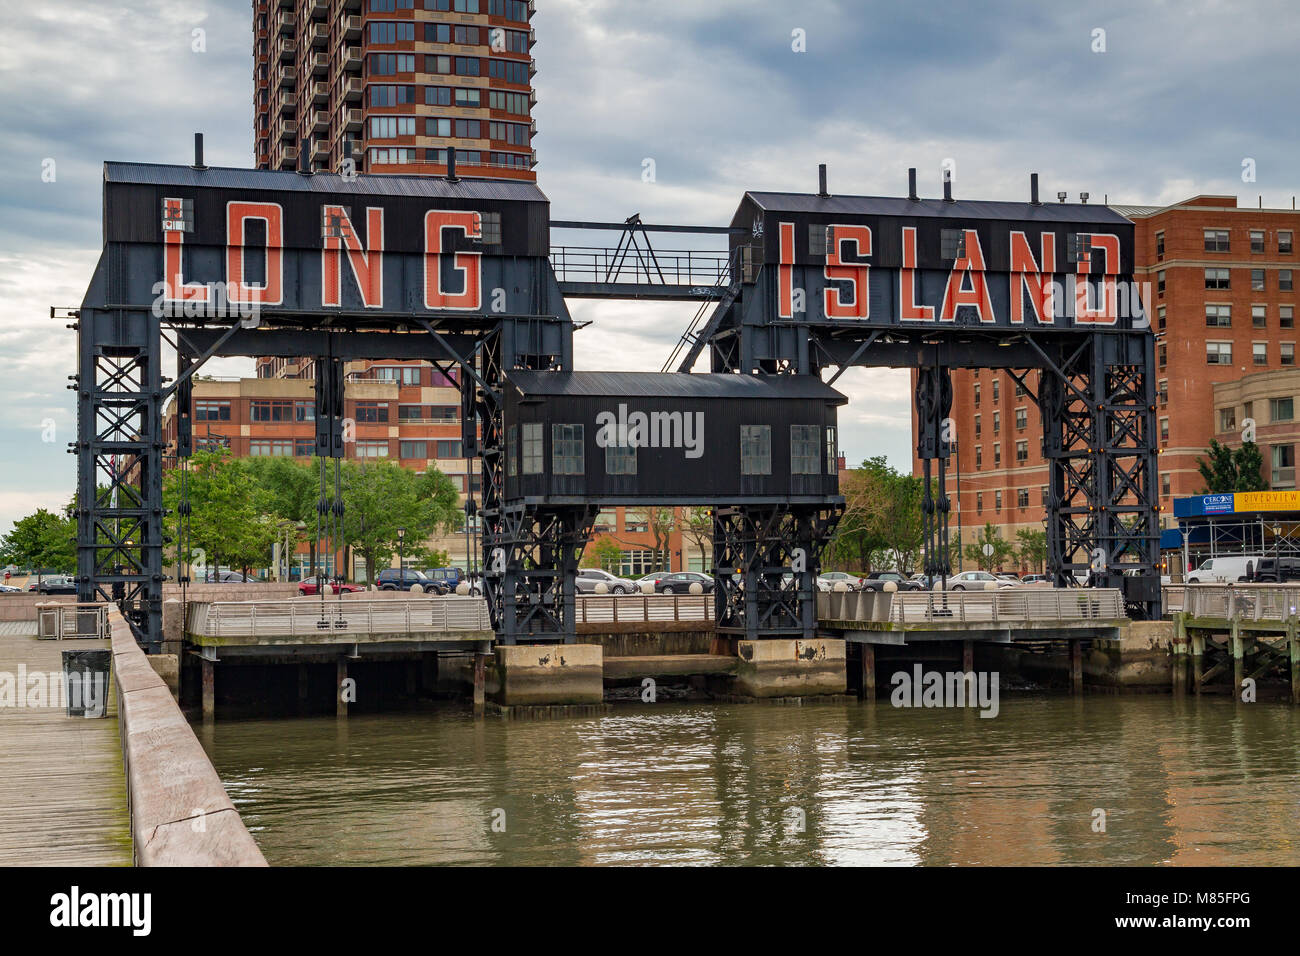 Industrial transfer bridges at Gantry Plaza State Park in Long Island CIty in the borough of Queens, NYC - Stock Image